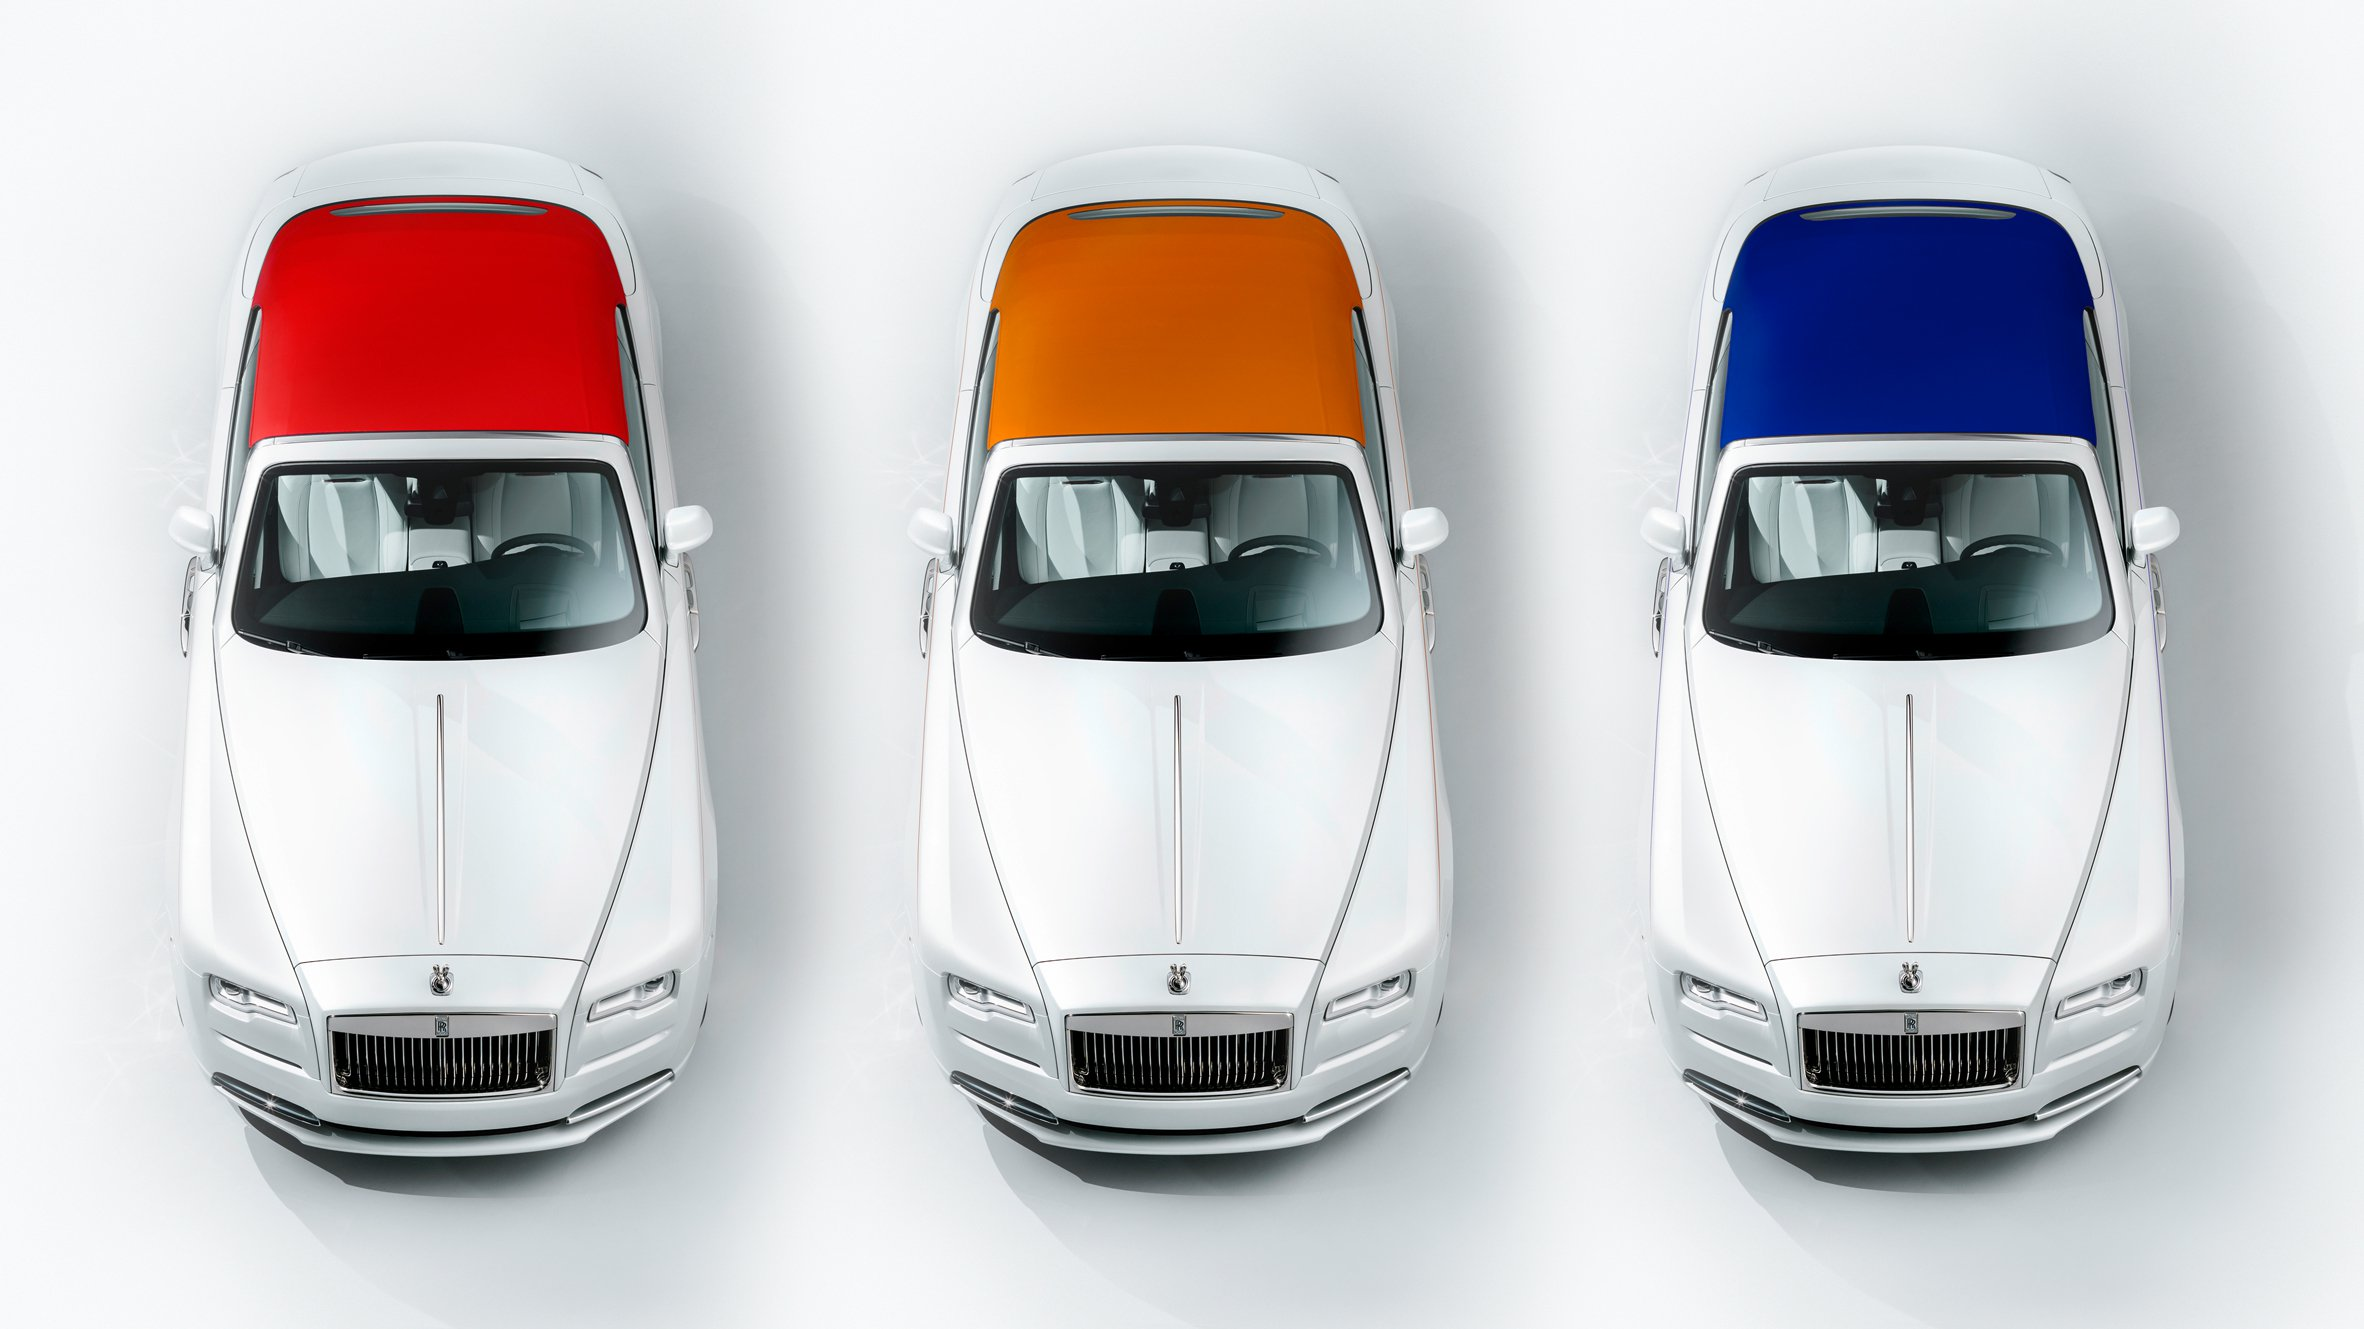 rolls-royce-dawn-fashion-inspired-interior-car-transport-design-news_dezeen_hero1